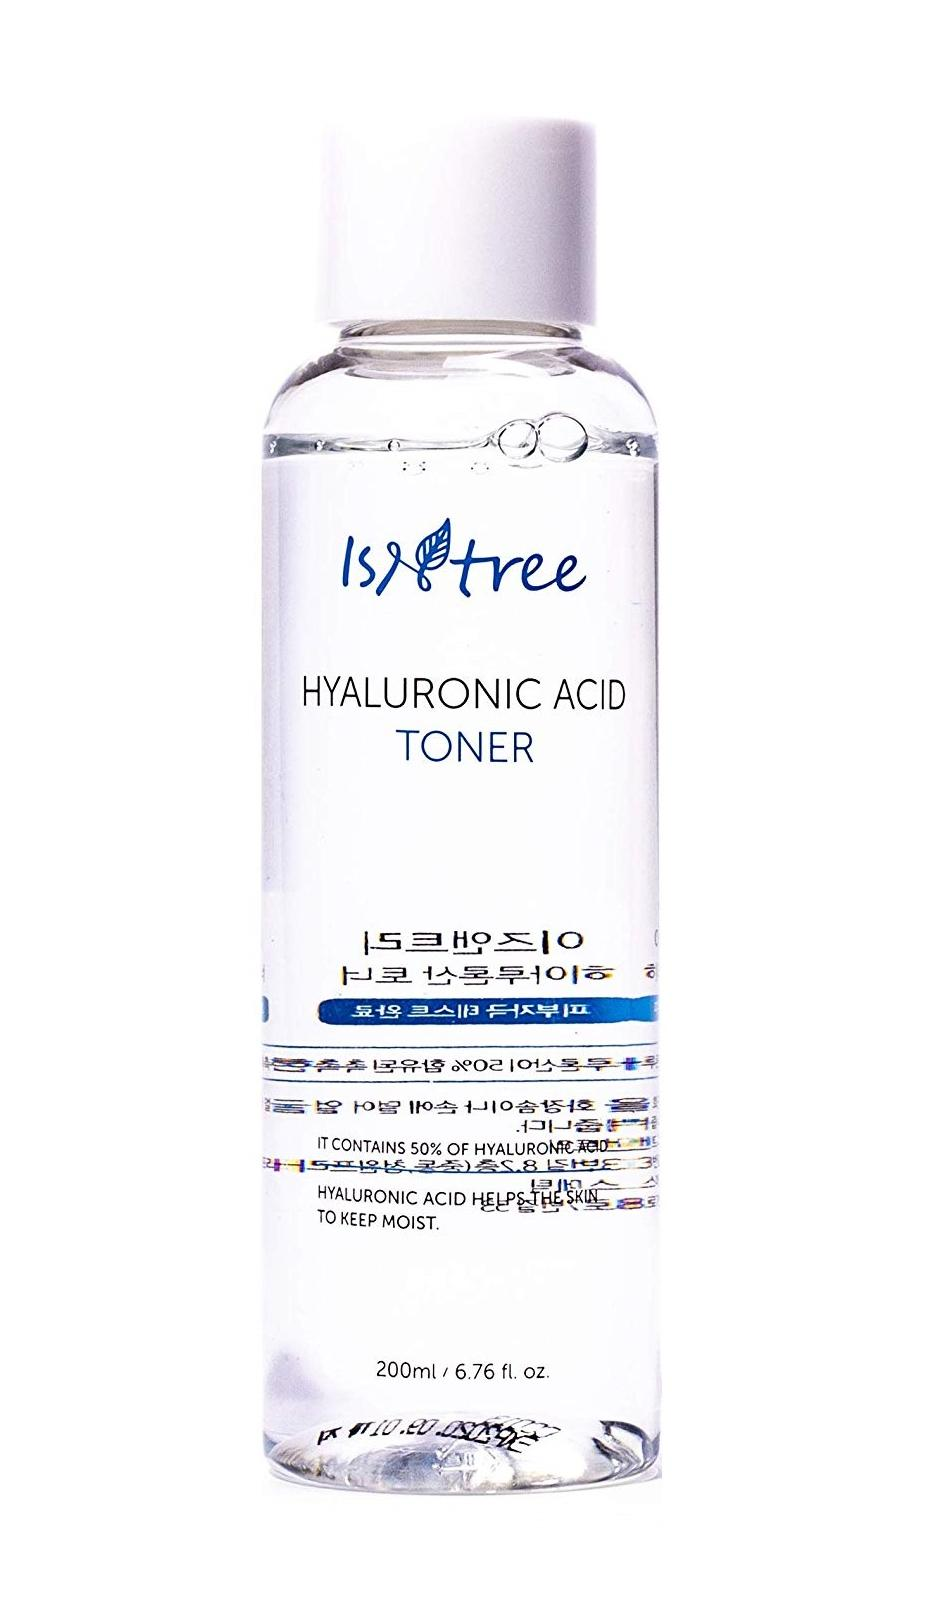 Hyaluronic Acid Toner